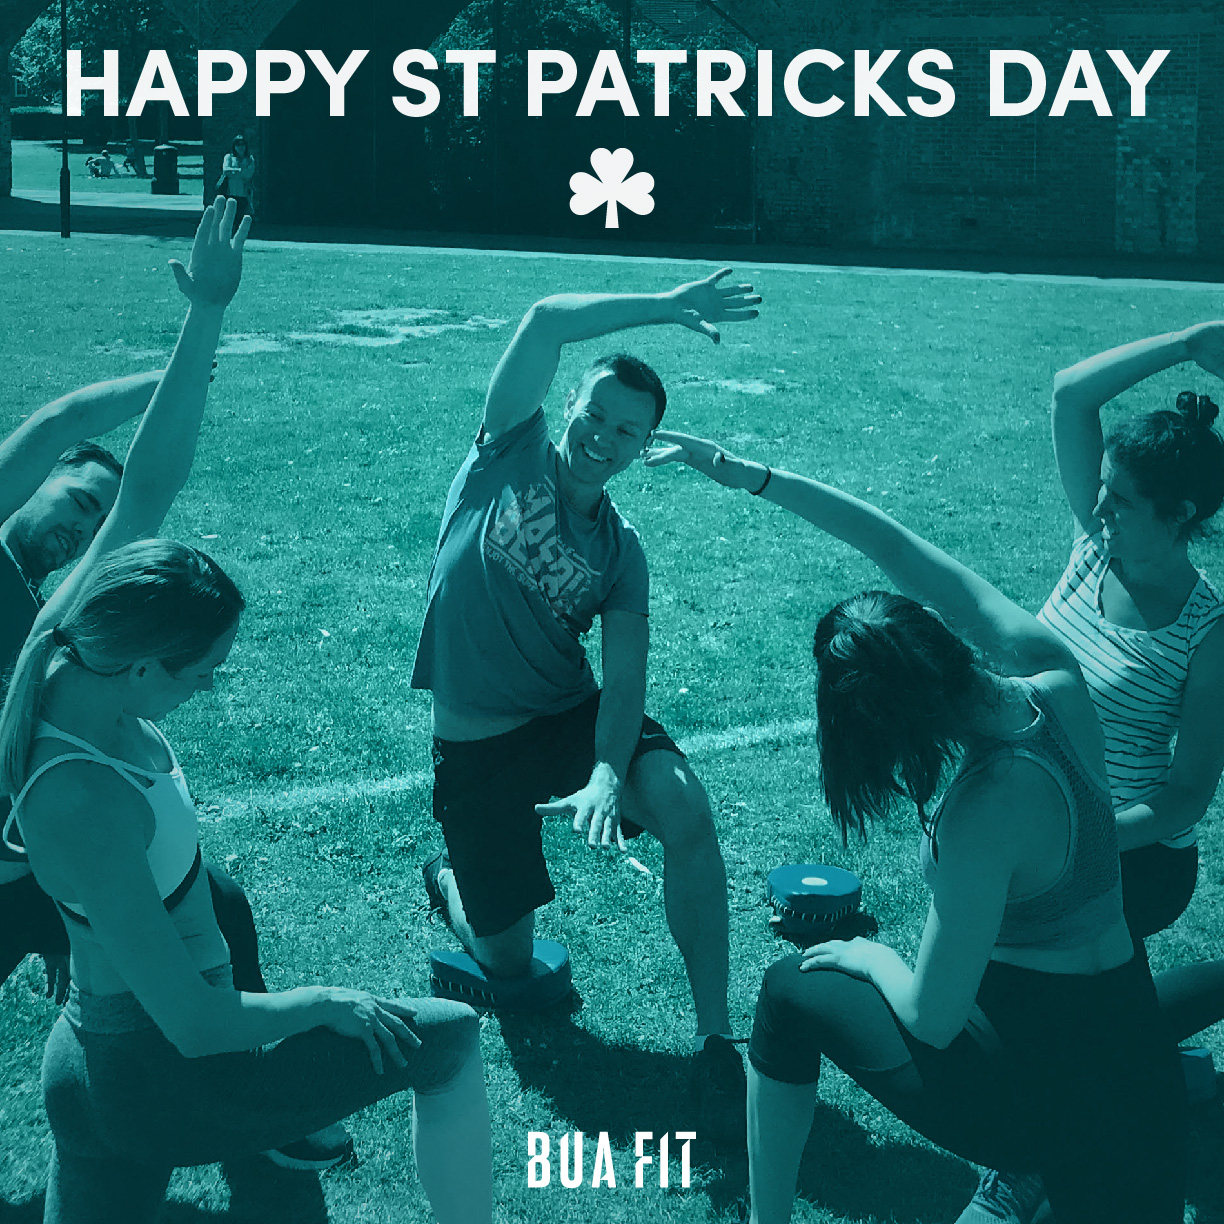 Are you partying or training for St Patricks Day?